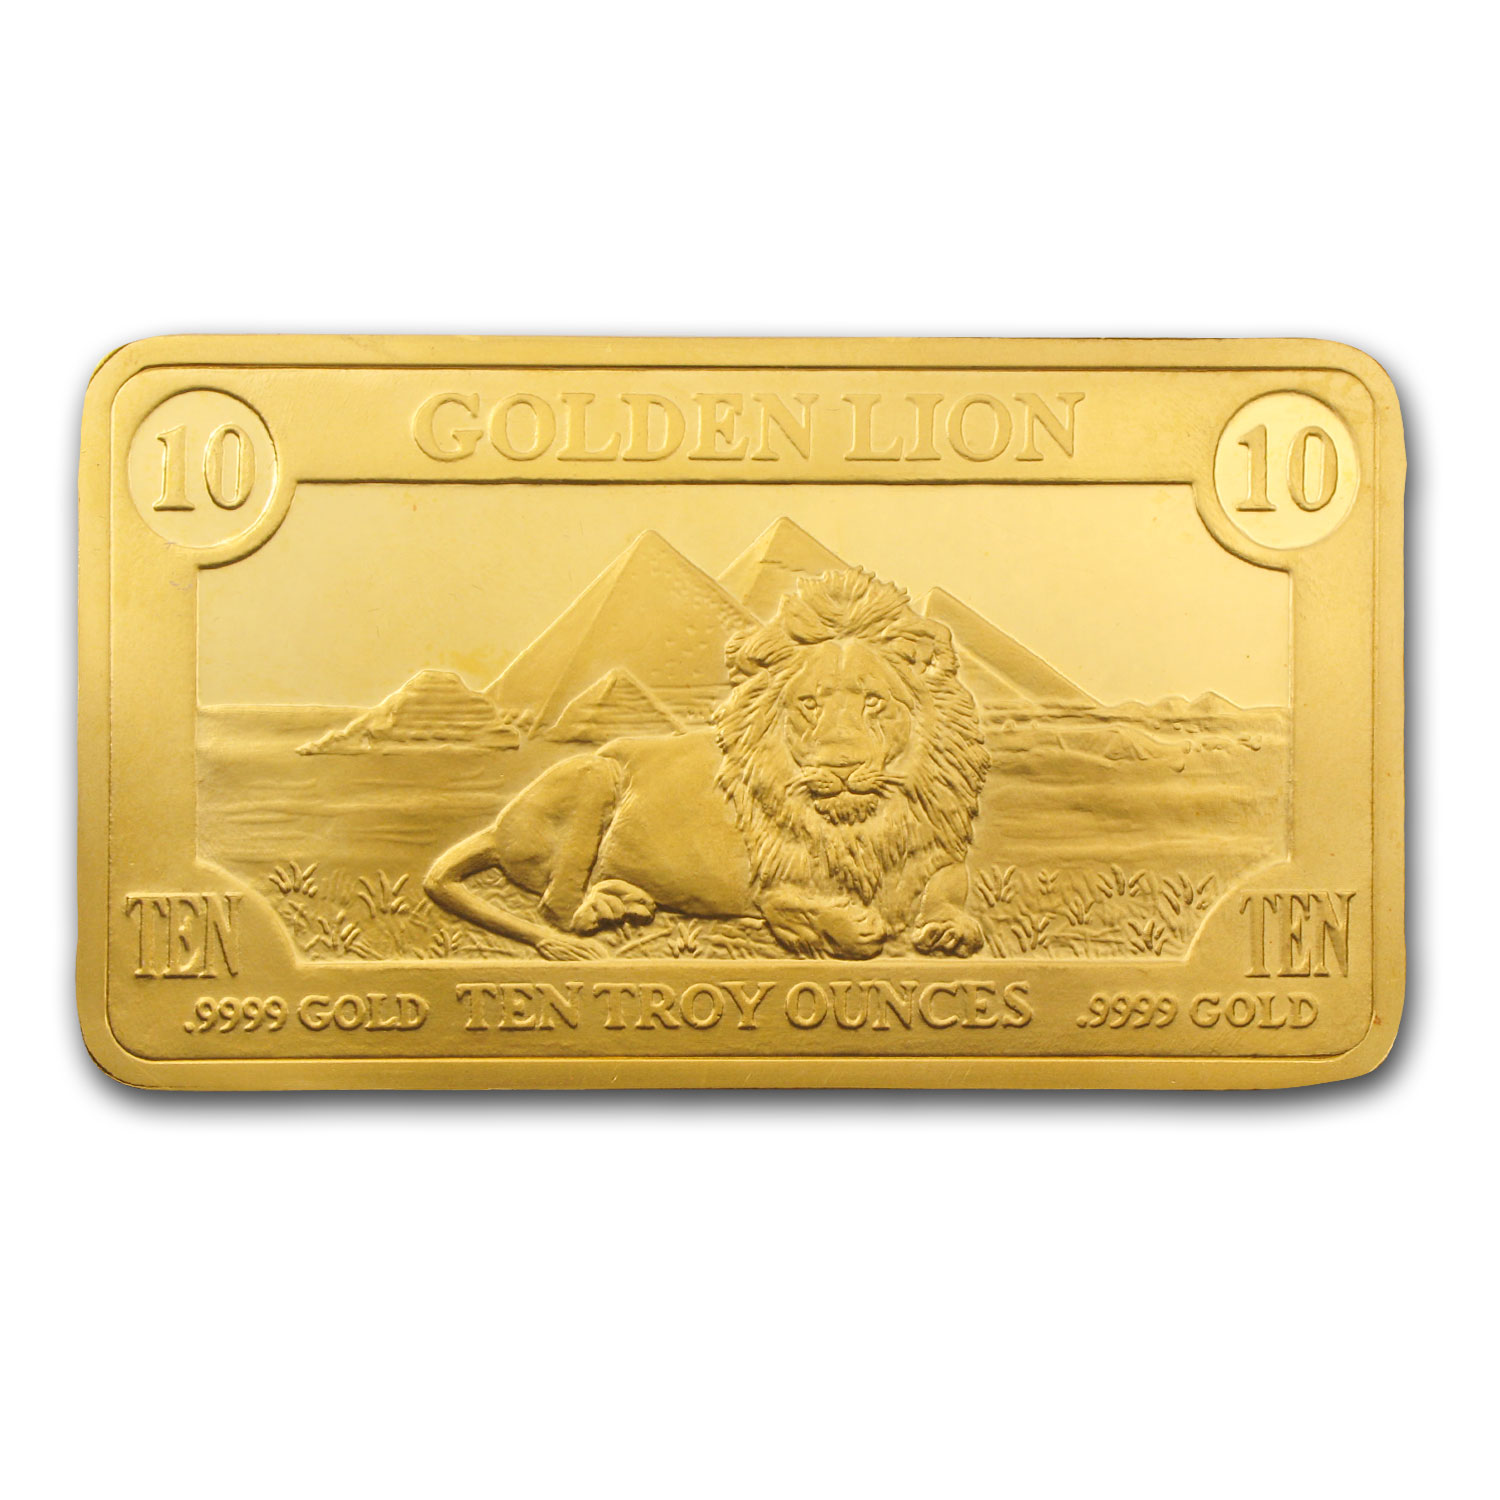 10 oz Gold Bars - Golden Lion Mint